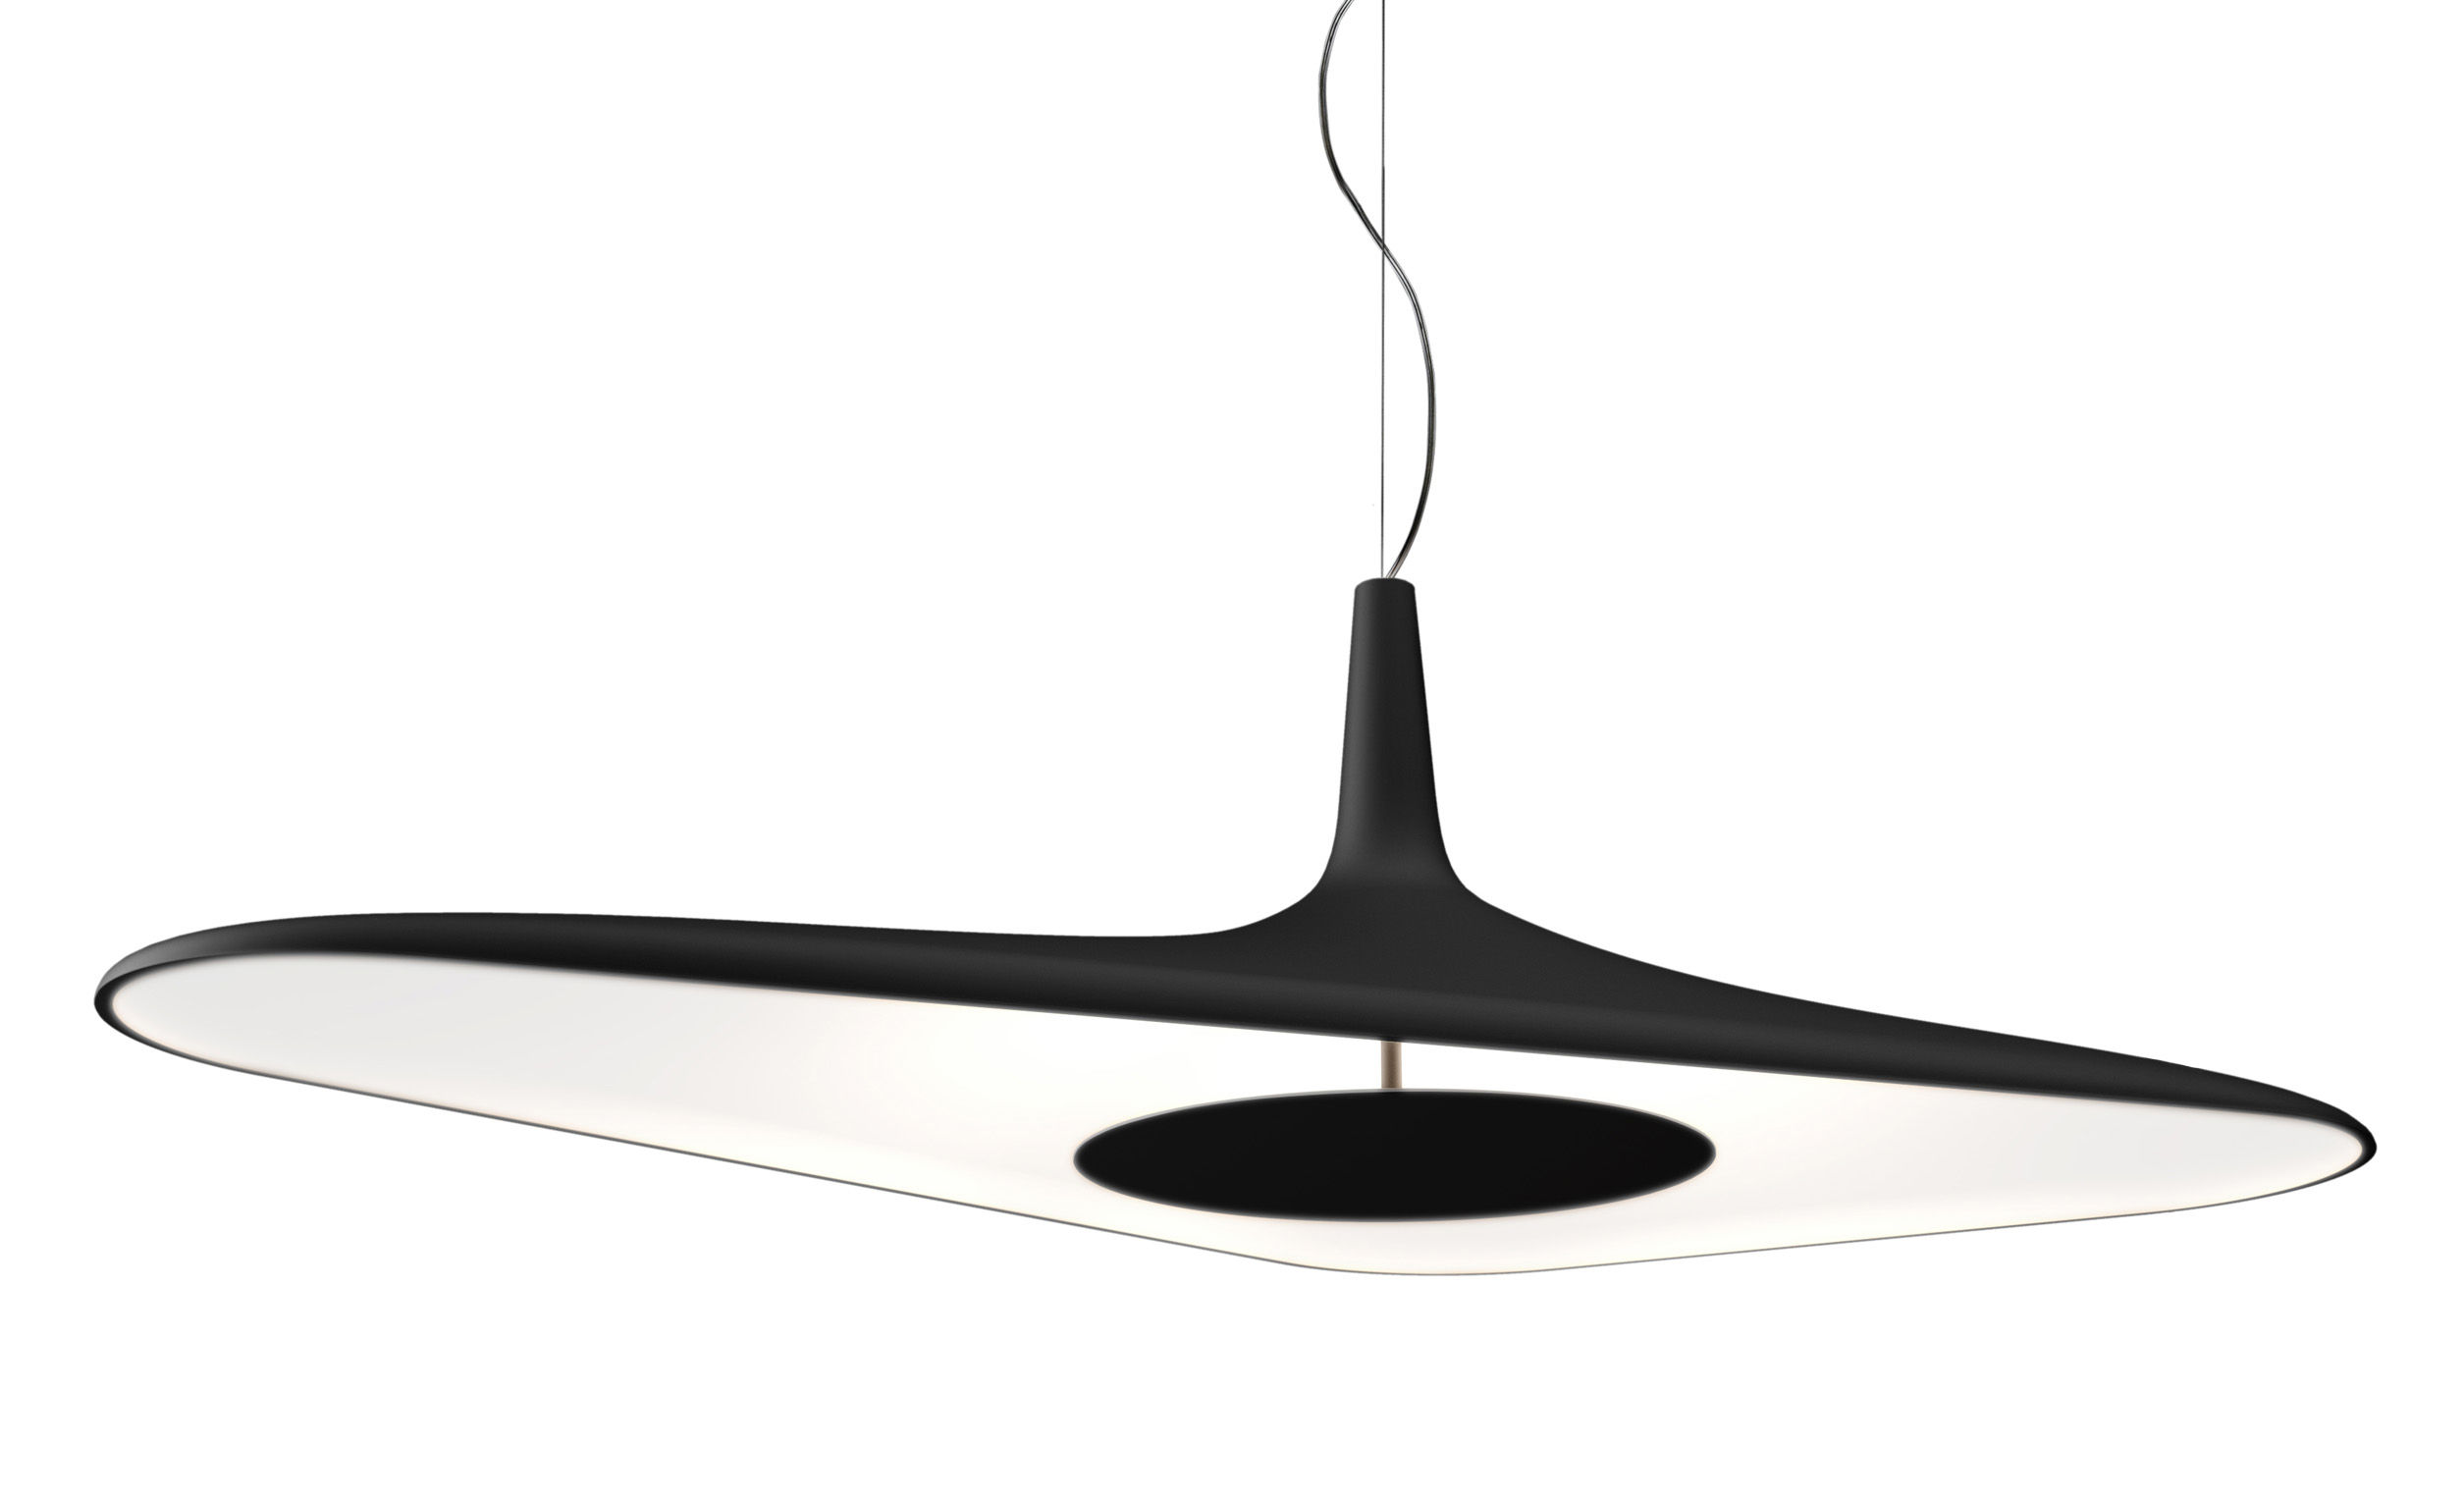 Soleil noir pendant led 120 x 62 5 cm black by luceplan for Luminaire noir suspension